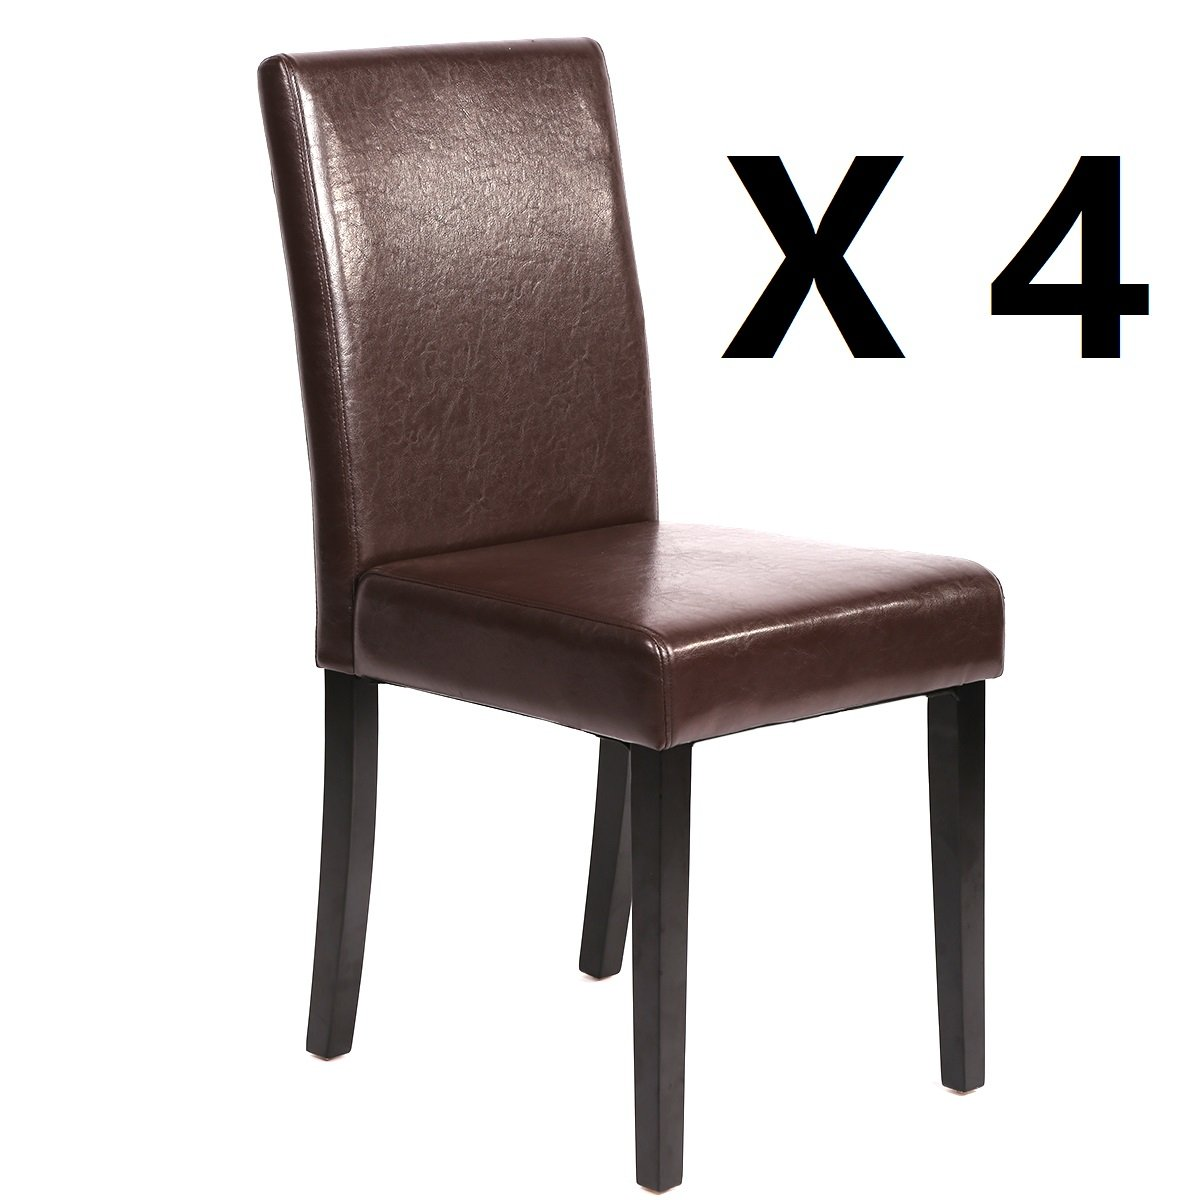 Mr Direct Set of 4 Urban Style Leather Dining Chairs With Solid Wood Legs Chair